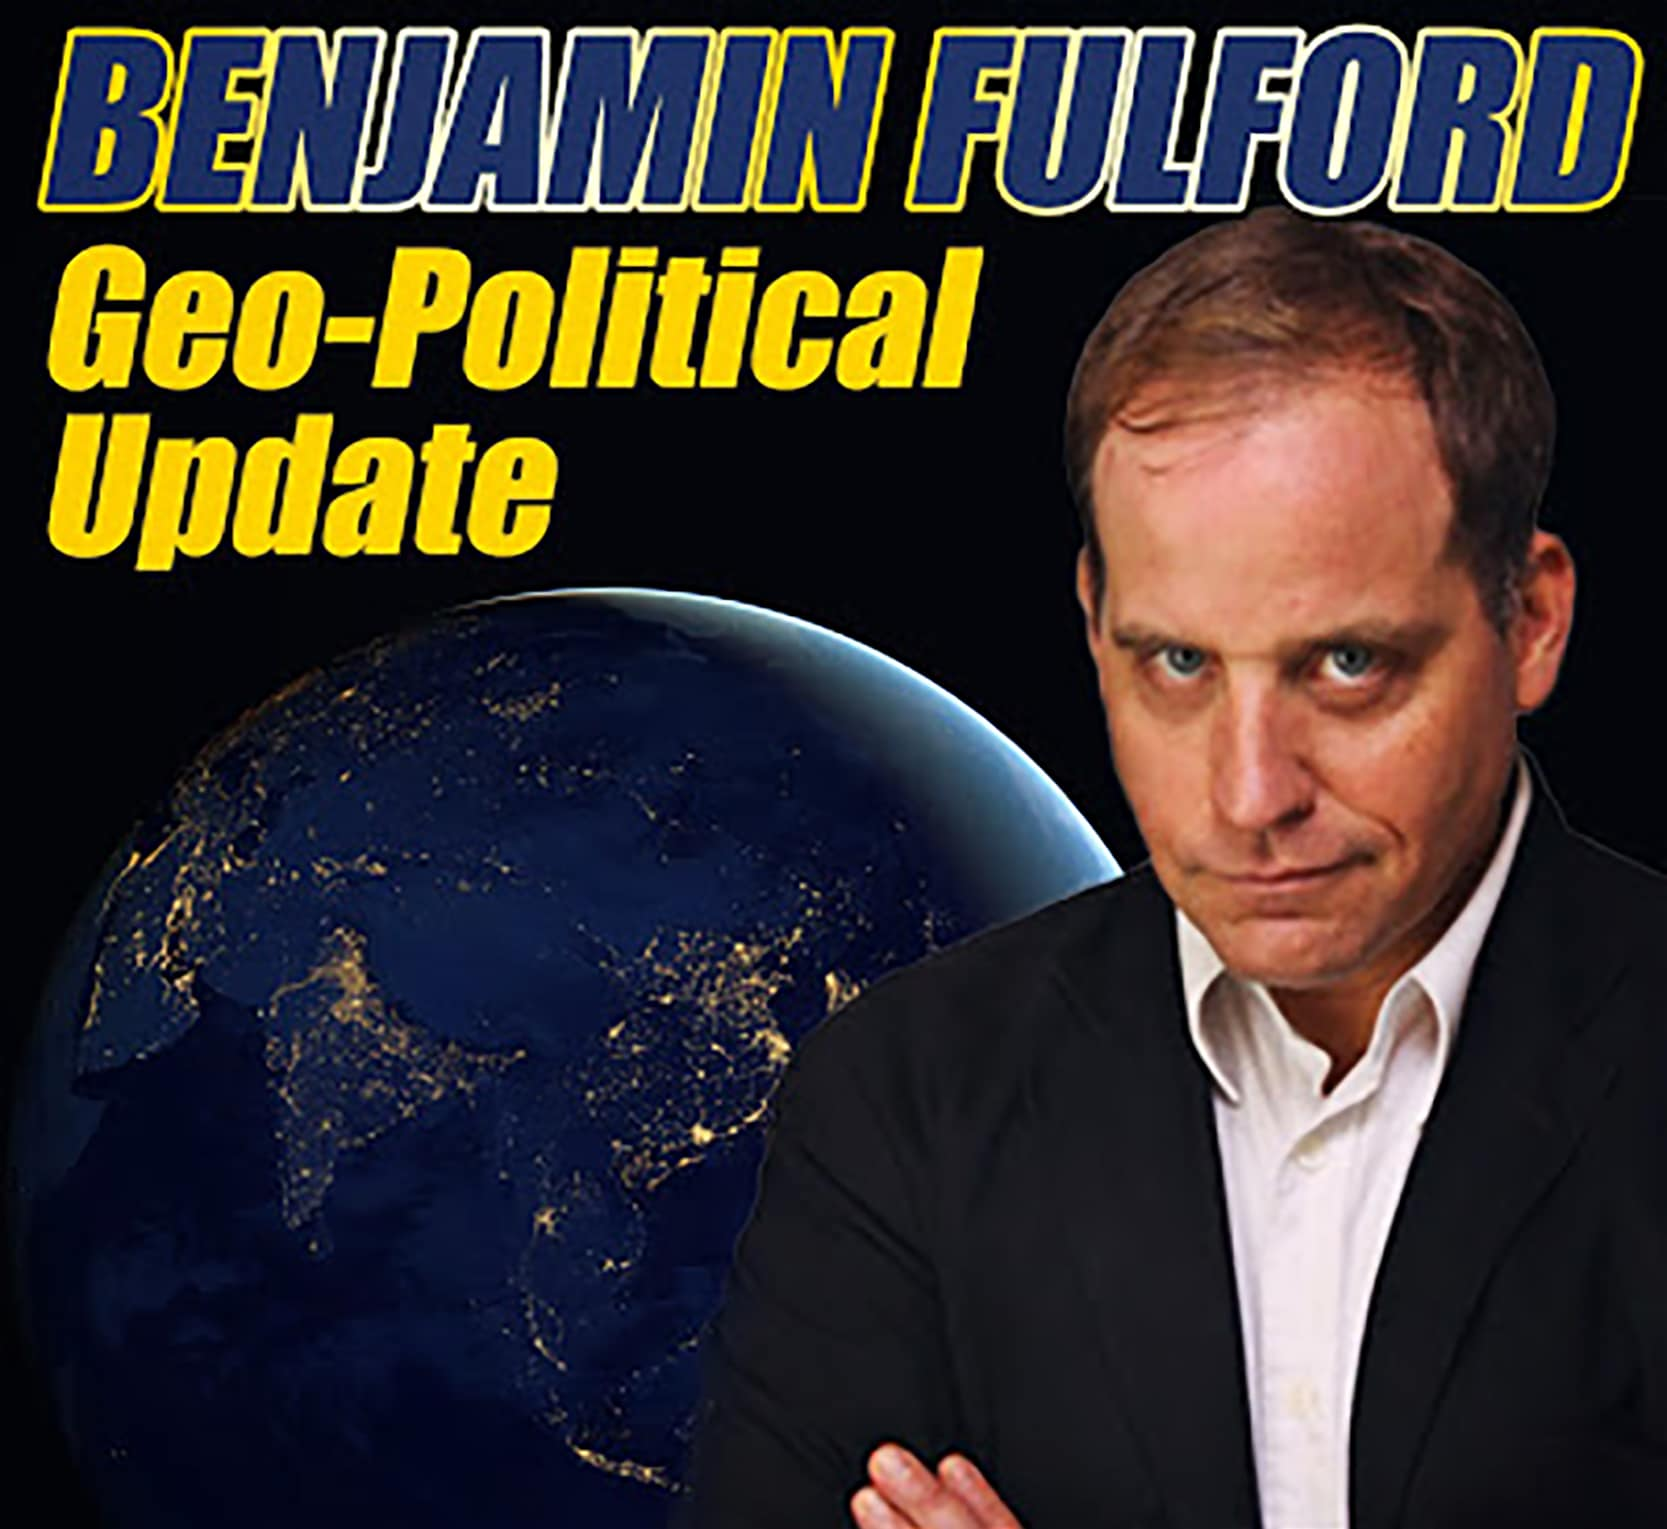 Benjamin-Fulford-Geo-Political-Updates-NEW.jpg